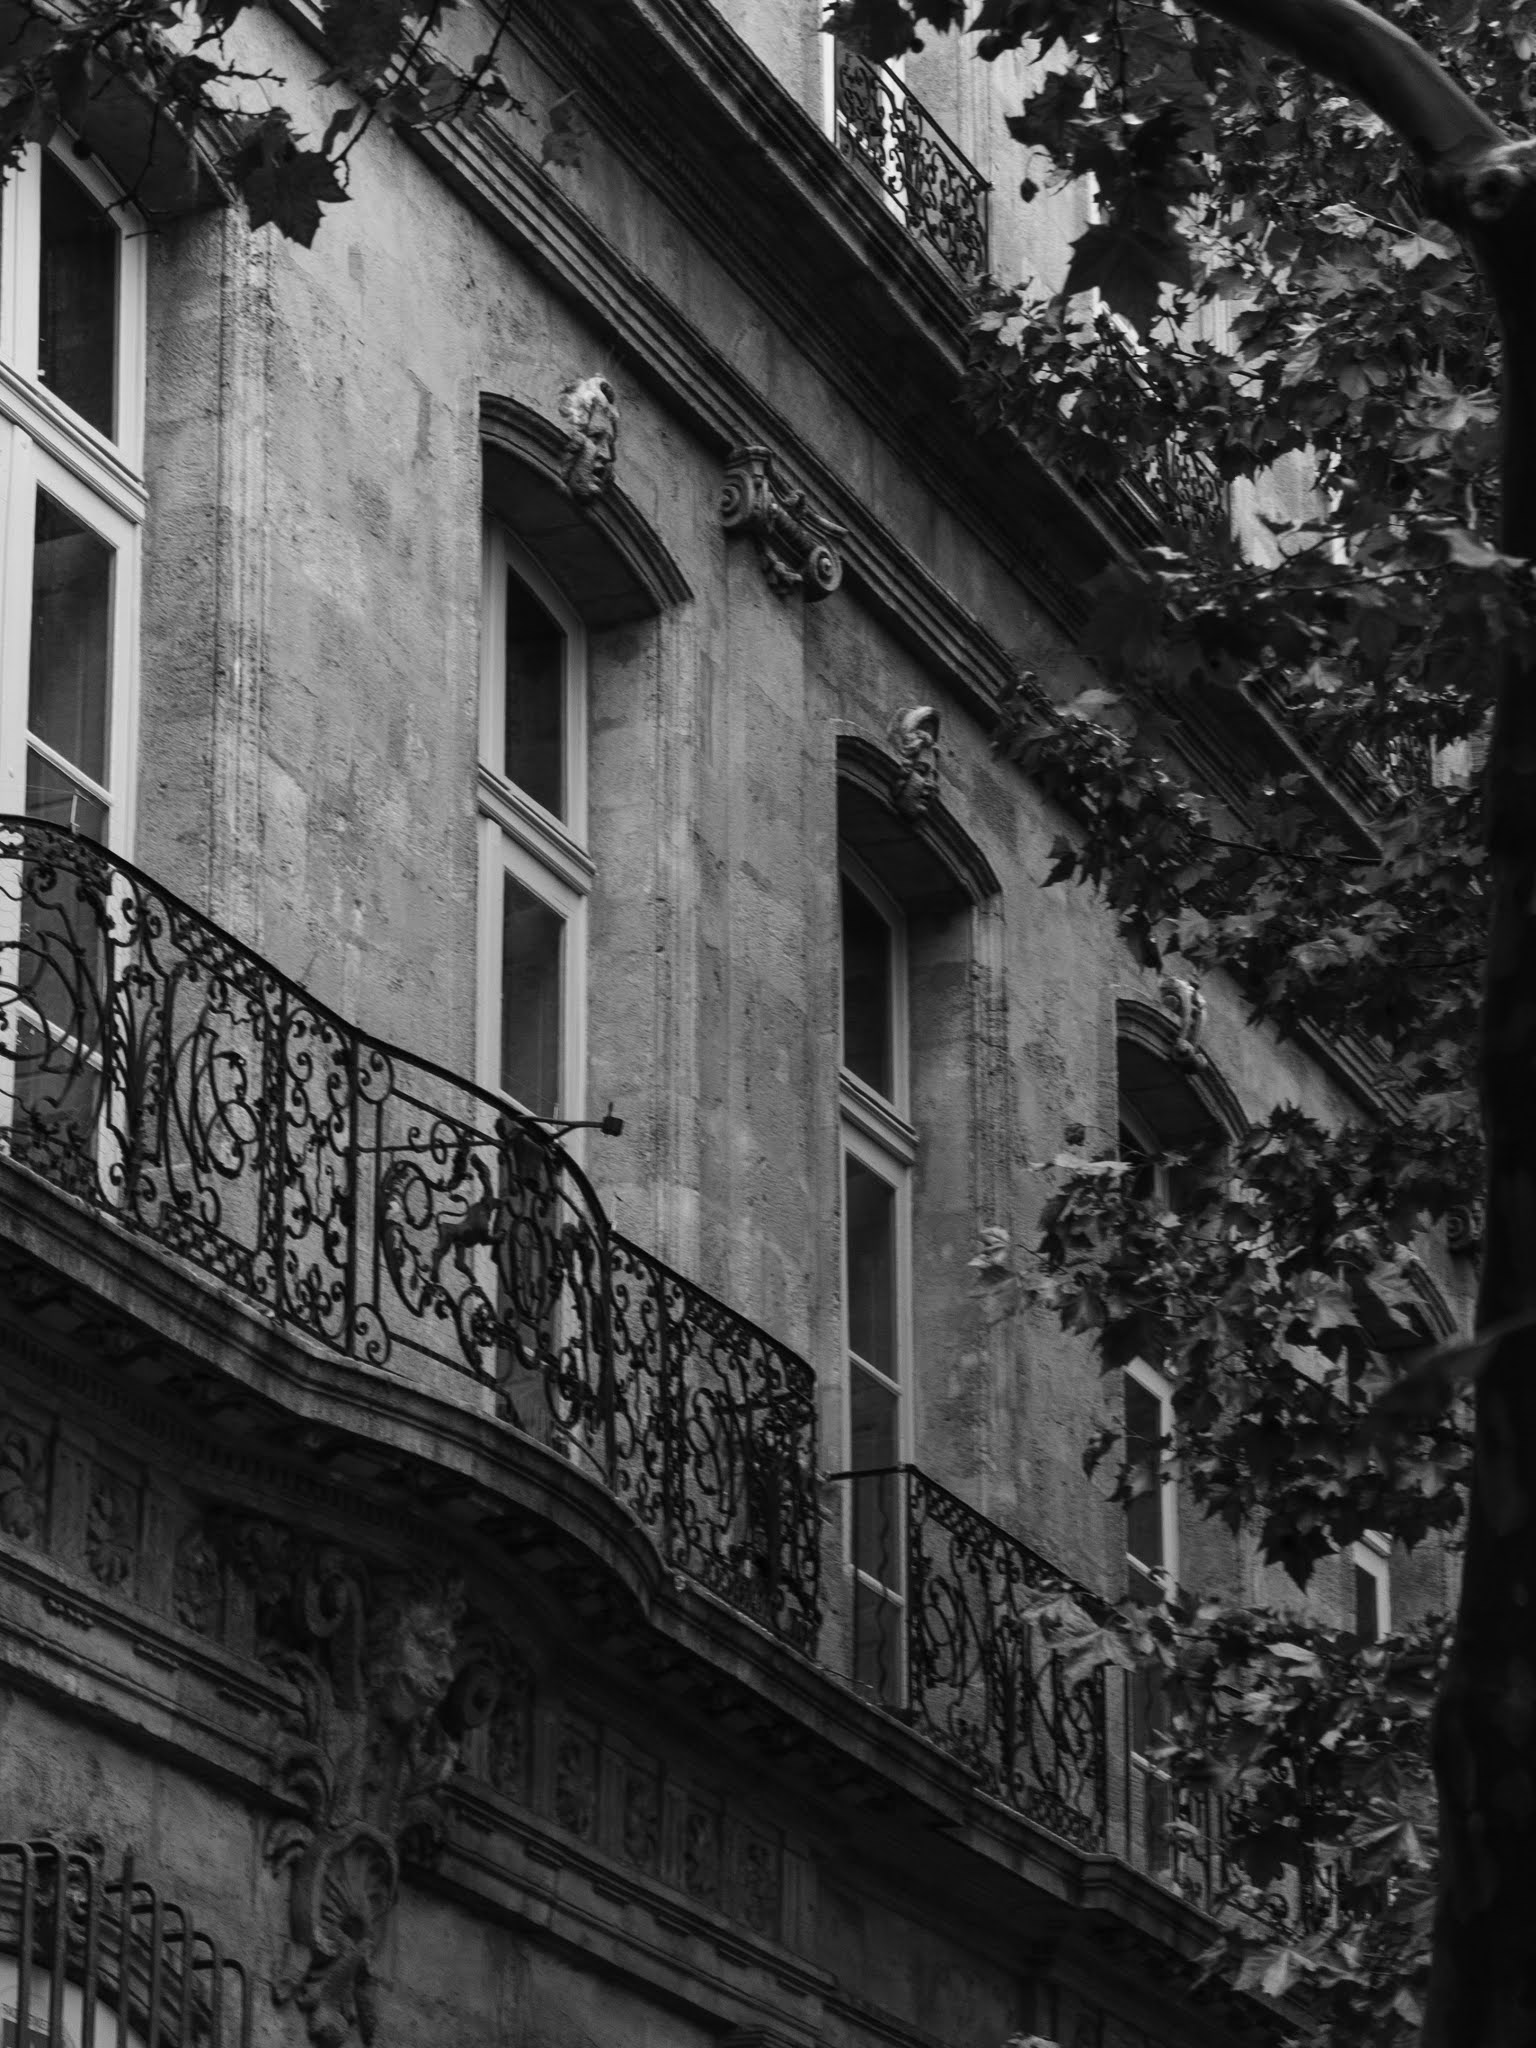 Decorative iron balconies and tall windows in Aix-en-Provence.